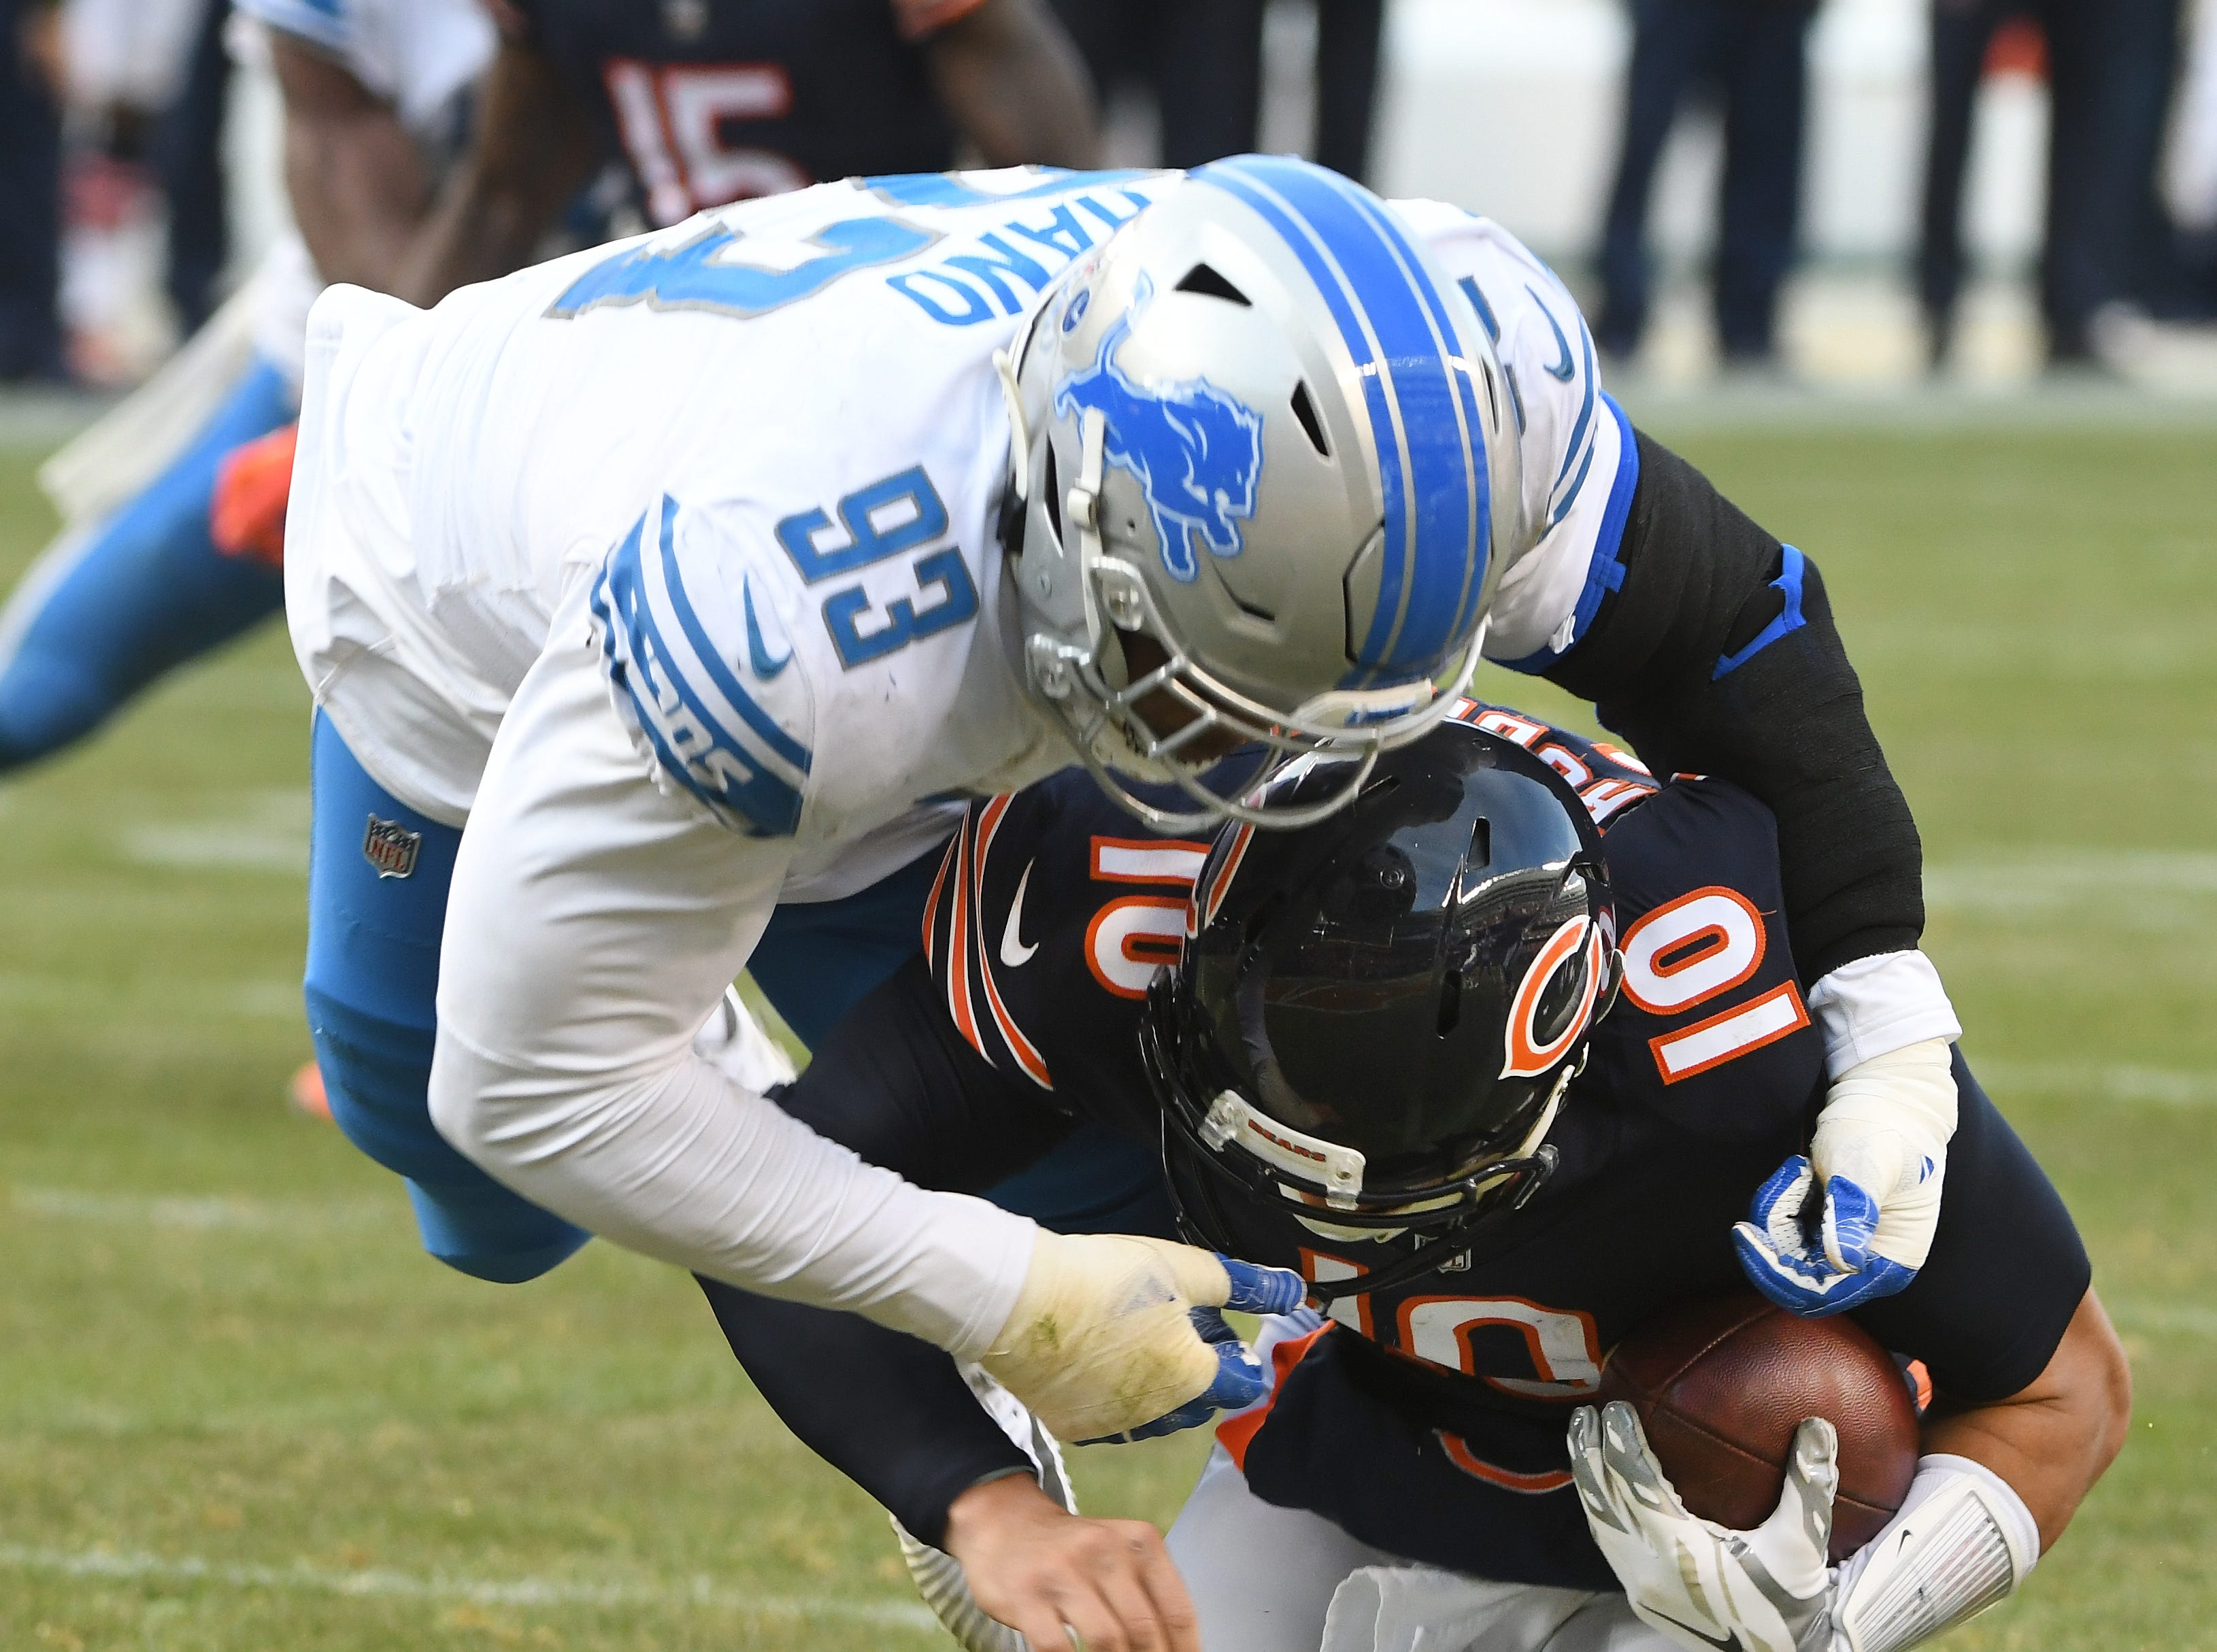 DT Da'Shawn Hand: The Lions appear to have scored a fourth-round steal in Hand, who stepped directly into a significant role in the rotation and produced at a high level. He led the team with 25 quarterback pressures from the inside and also proved to have an advanced feel for how to use his frame to defend the run. The only times he looked out of place was when facing a double team, but his play strength should develop with another offseason. Grade: A-